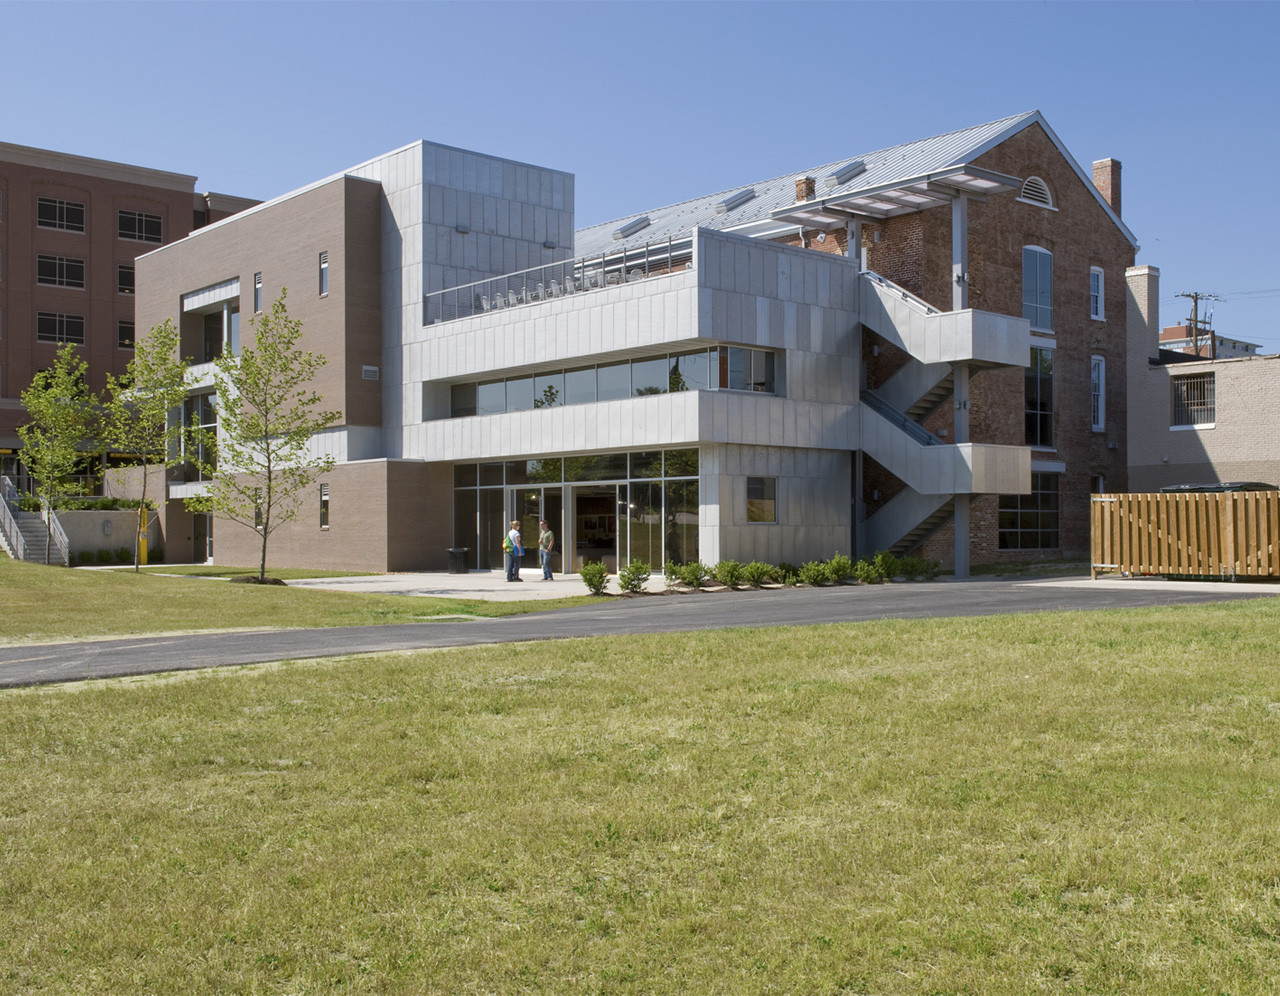 VCU Adcenter (Brandcenter) / Clive Wilkinson Architects, © VCU Creative Services,  Allen T. Jones